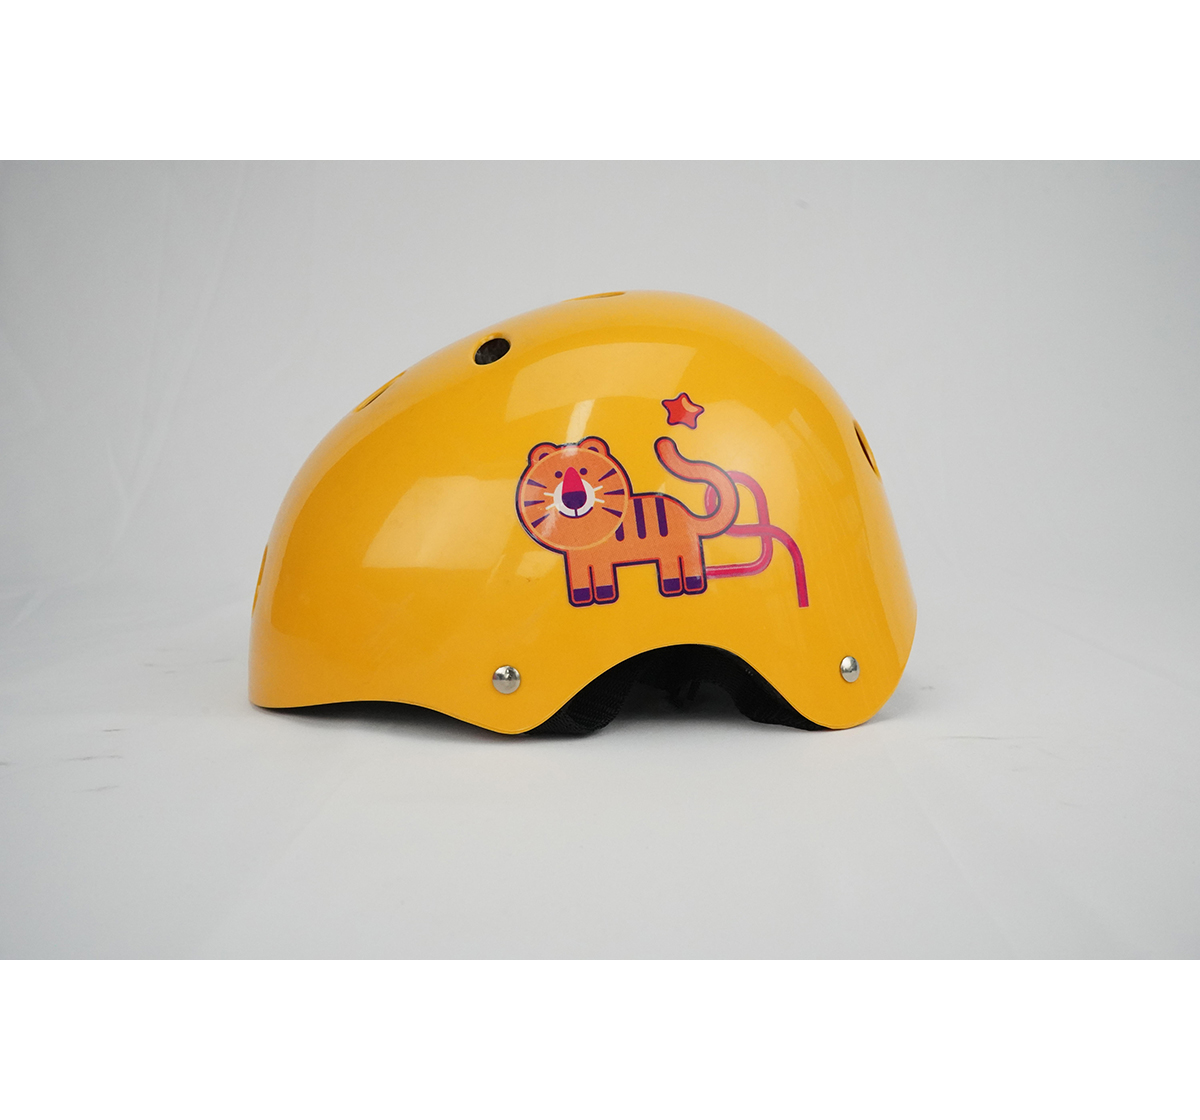 Zoozi | Zoozi Sports Helmet Tiger Sports & Accessories for Kids age 3Y+ (Yellow)